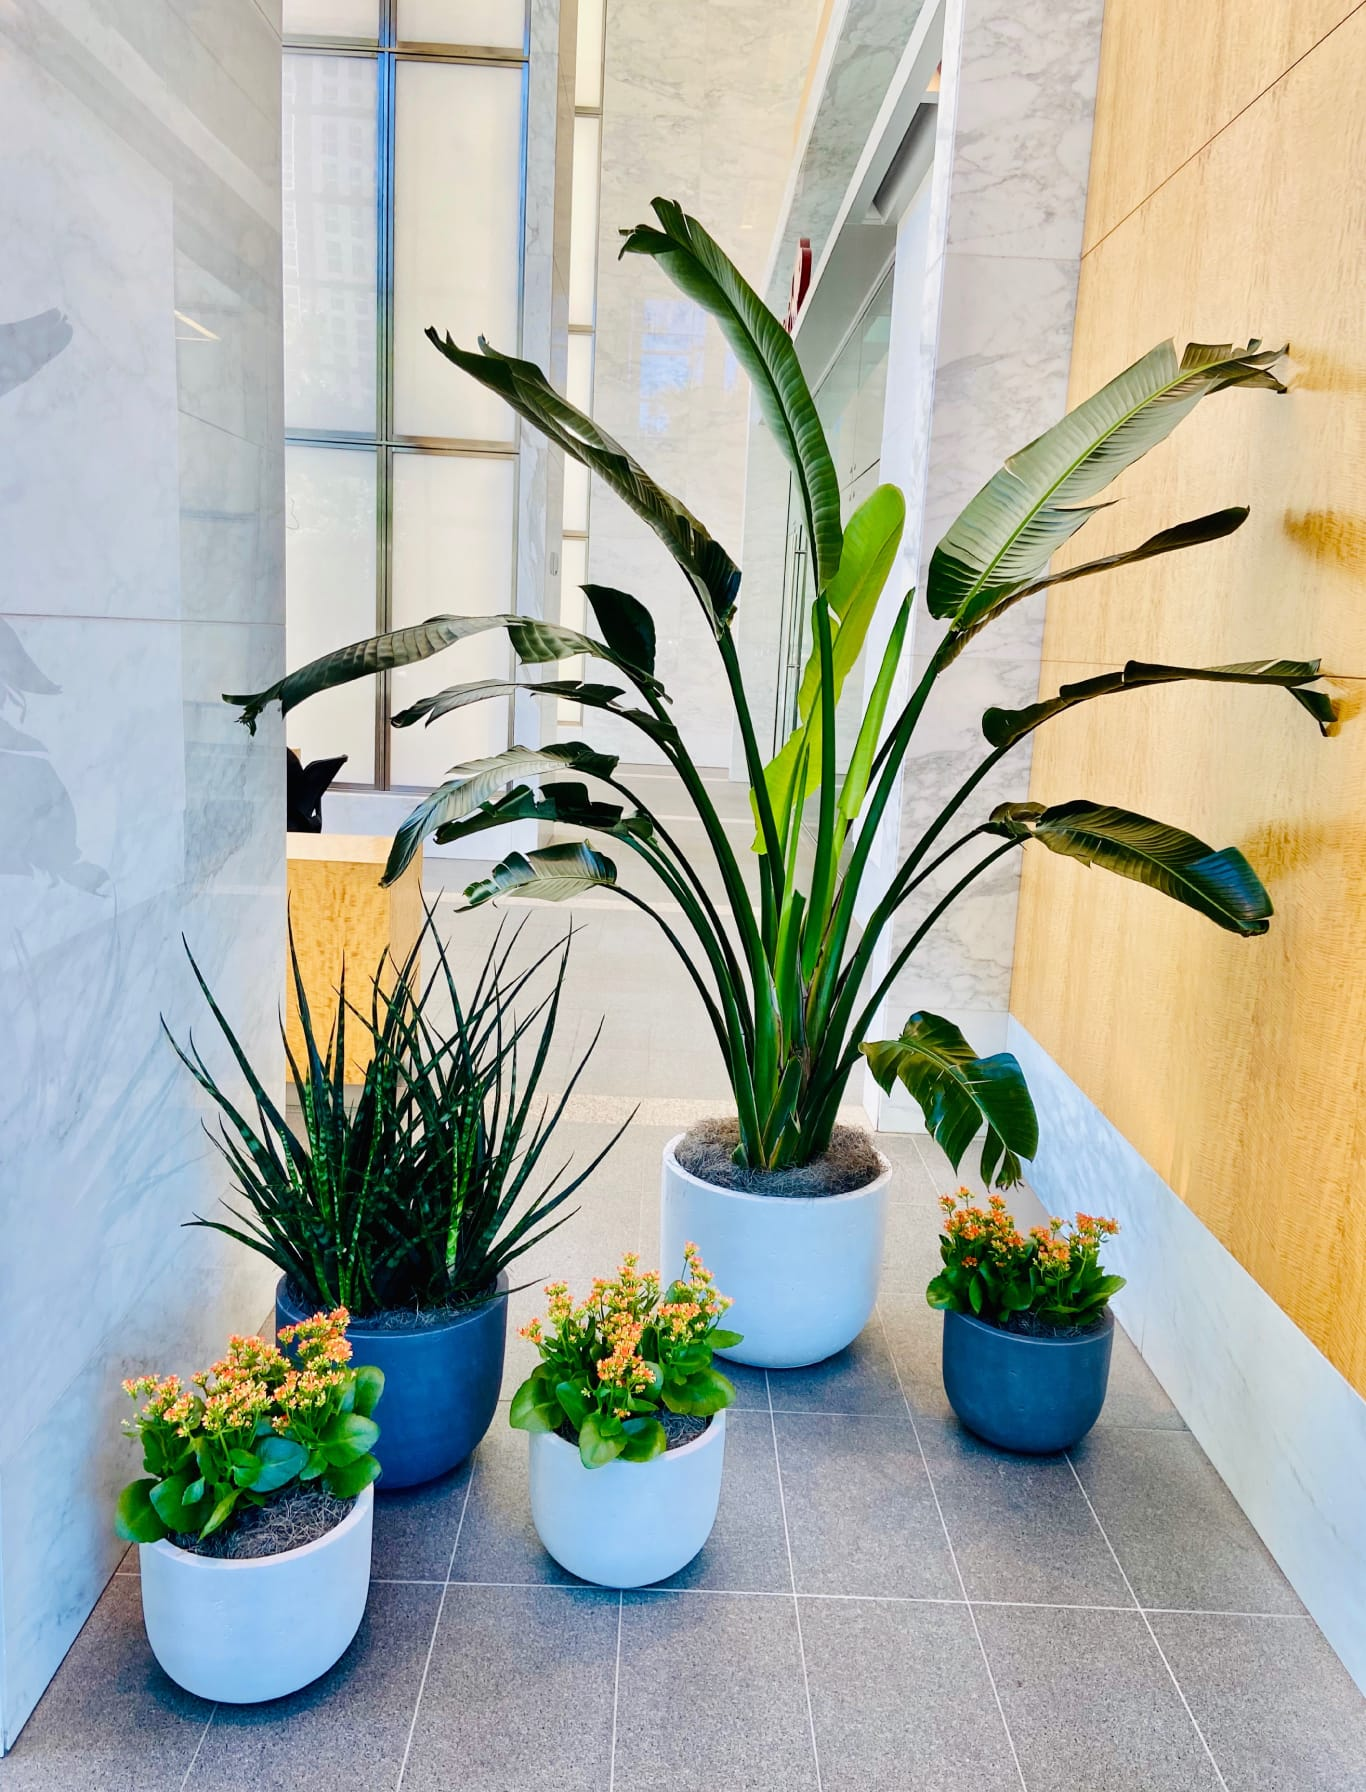 Dallas Office Plant Design - NaturaHQ